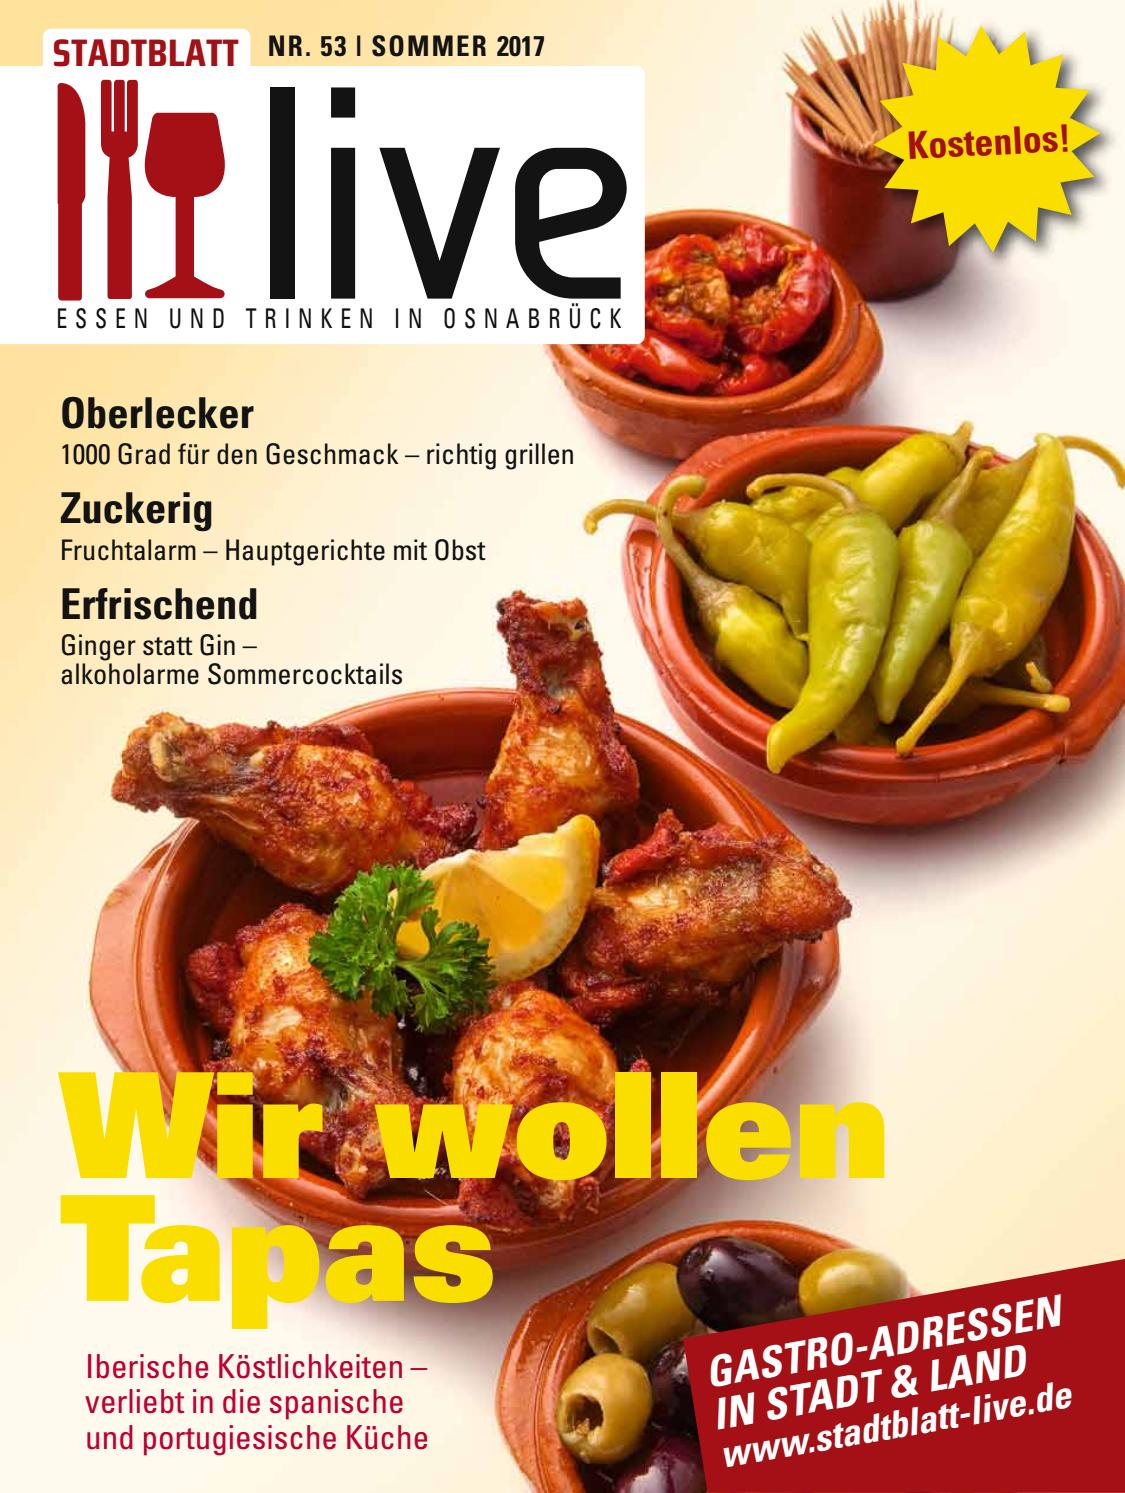 Full Size of Stadtblatt Live Sommer 2017 By Bvw Werbeagentur Midischrank Bad Küche Anthrazit Regal Dachschräge Schranksysteme Schlafzimmer Zwangsbelüftung Fenster Wohnzimmer Hr Leckere Landküche Rezepte